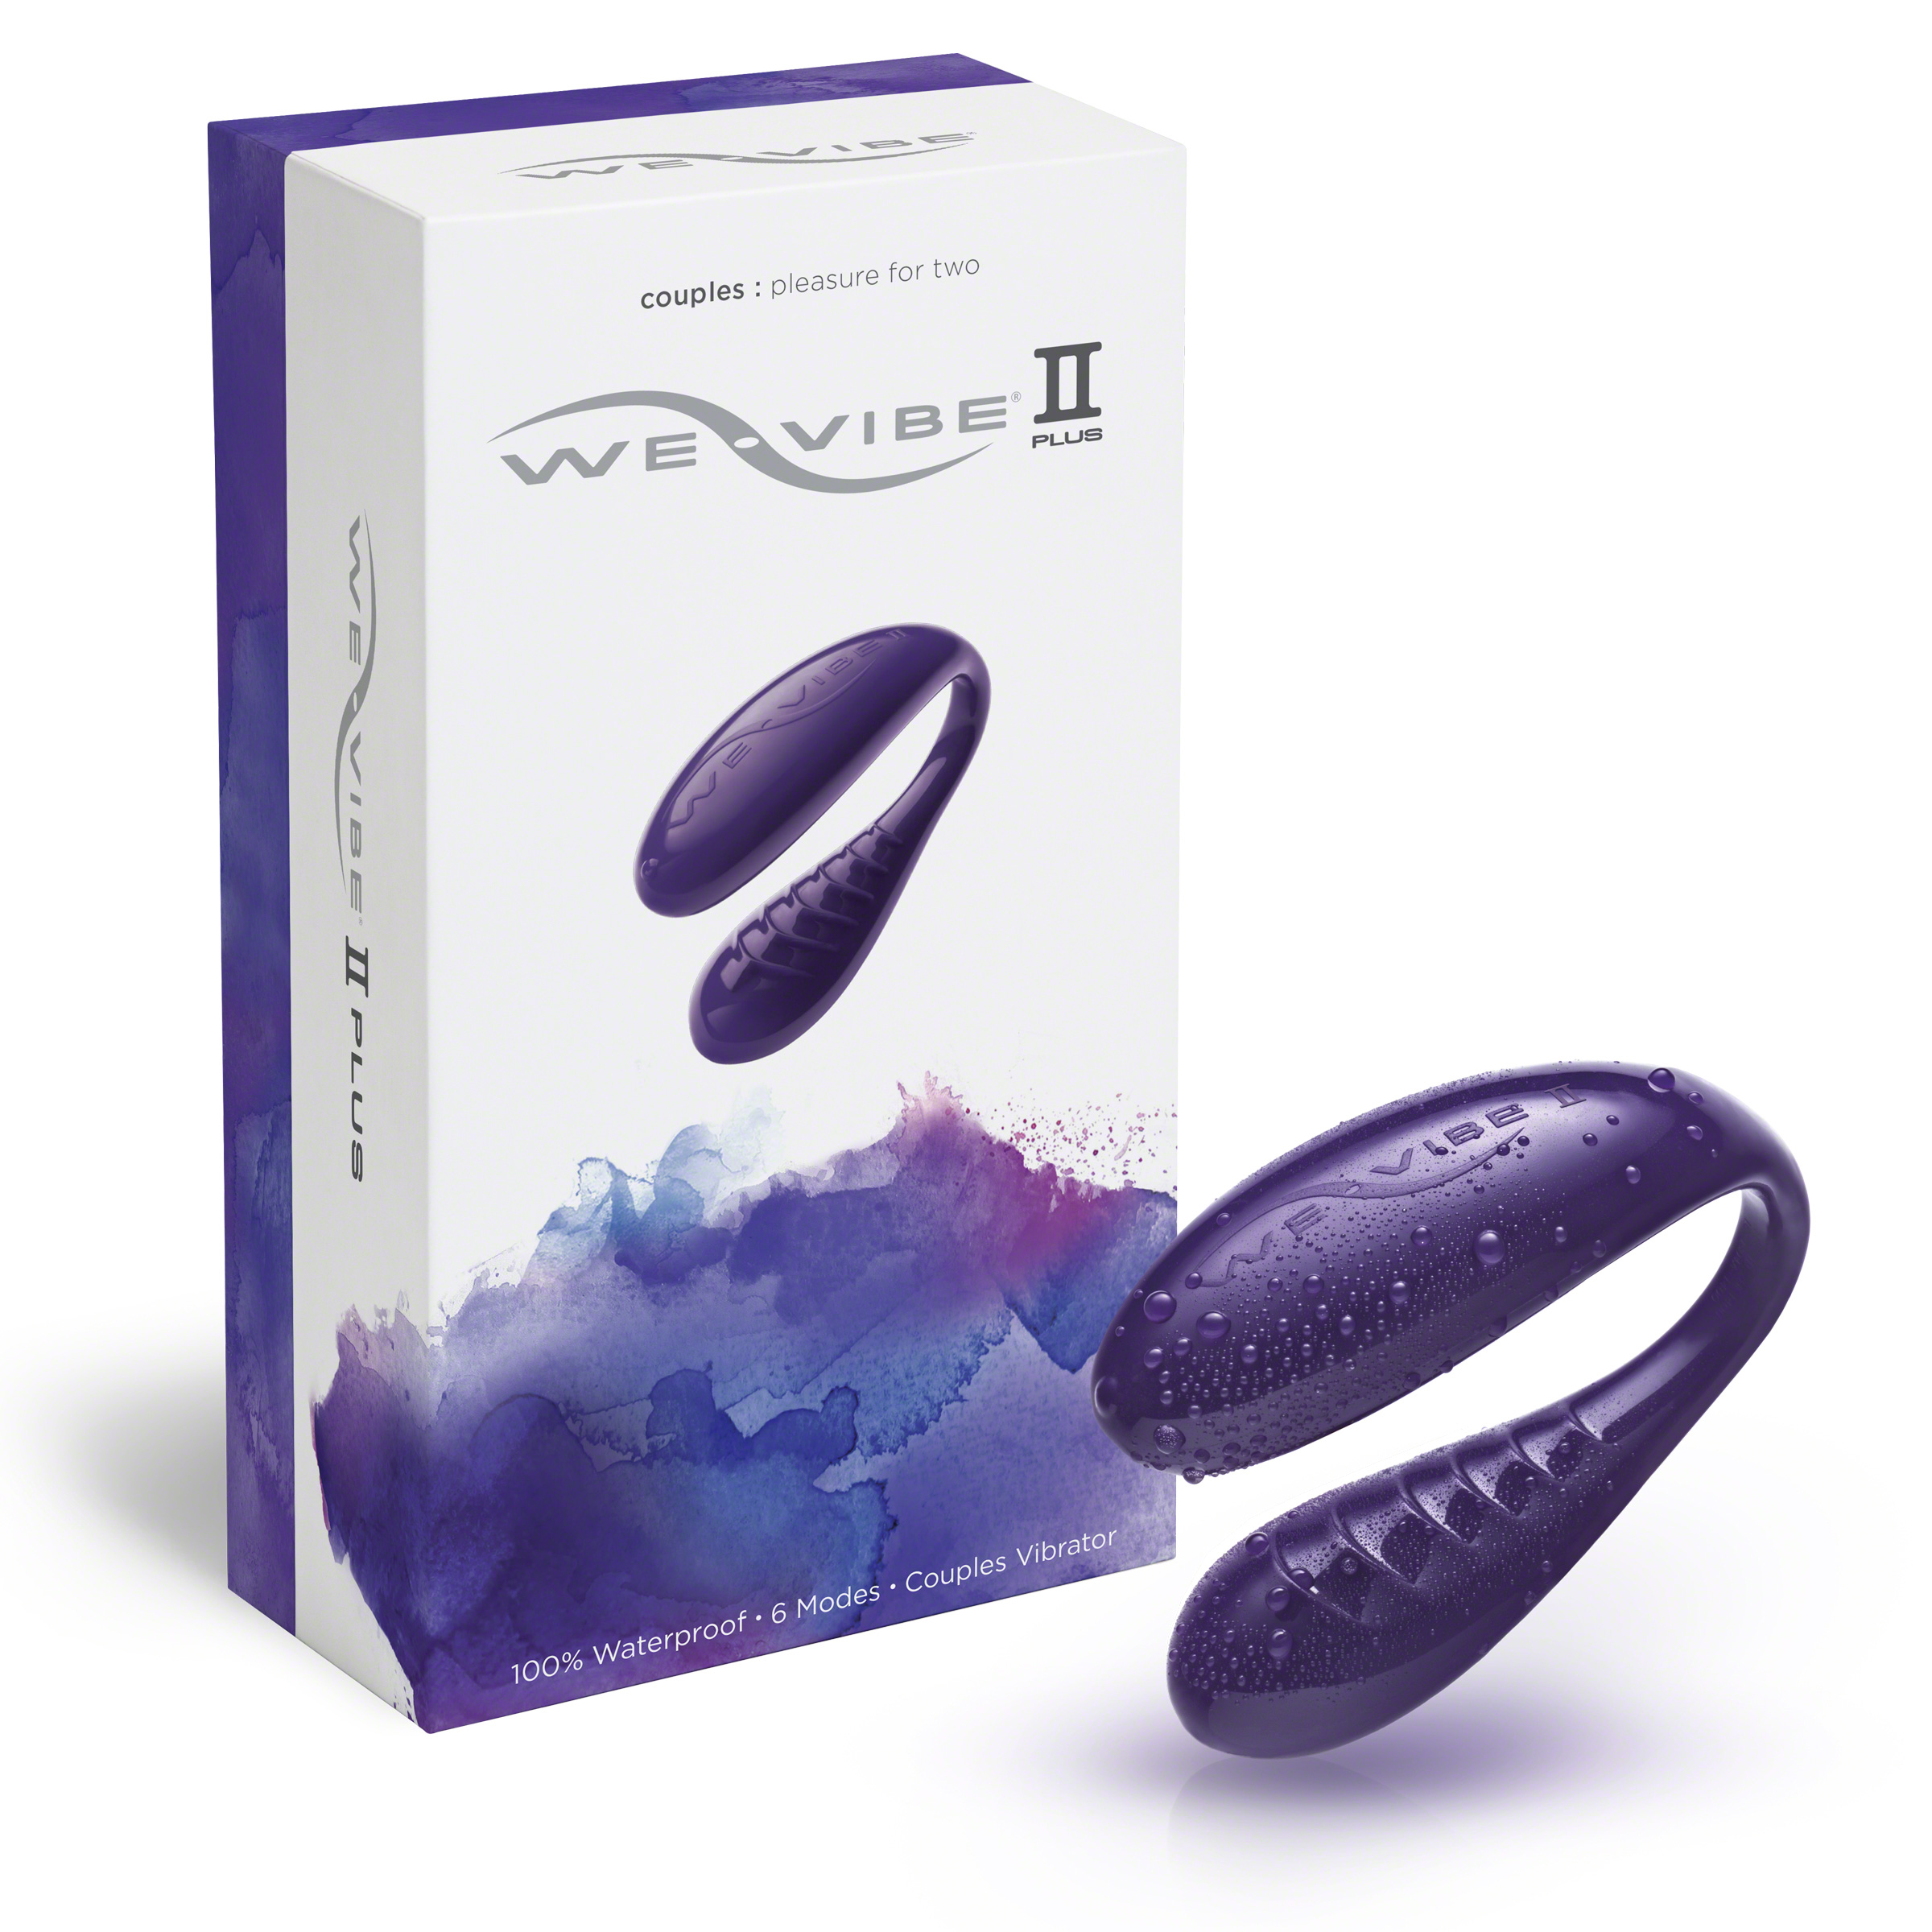 http://presskit.we-vibe.com/retailers/downloads/WVII_Plus/Product_Images/WeVibeIIPlus-w-box-2400-wm.jpg